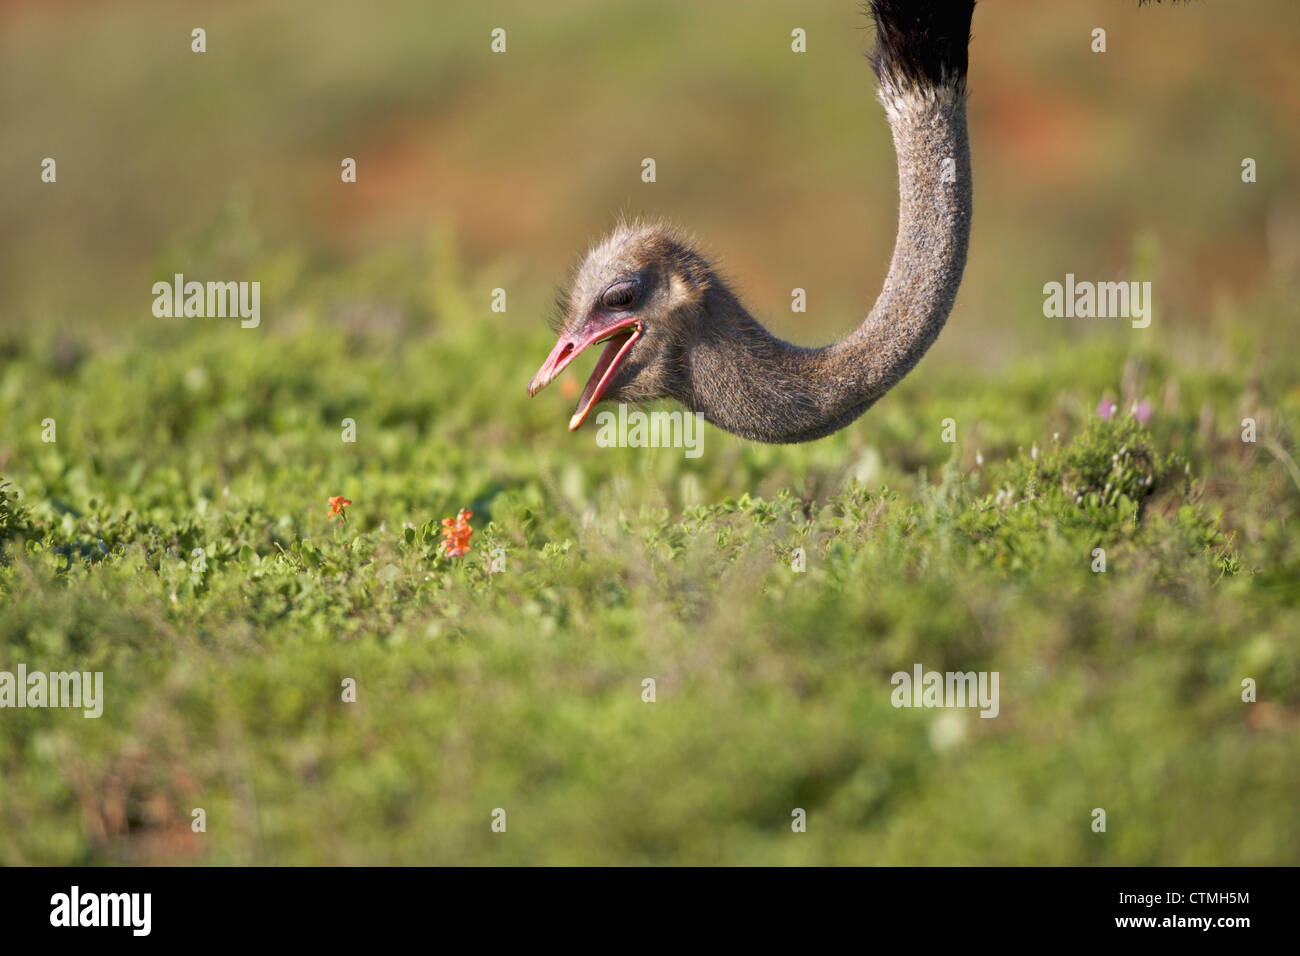 Close-up of an Ostrich, Addo Elephant National Park, Eastern Cape Province, South Africa Stock Photo